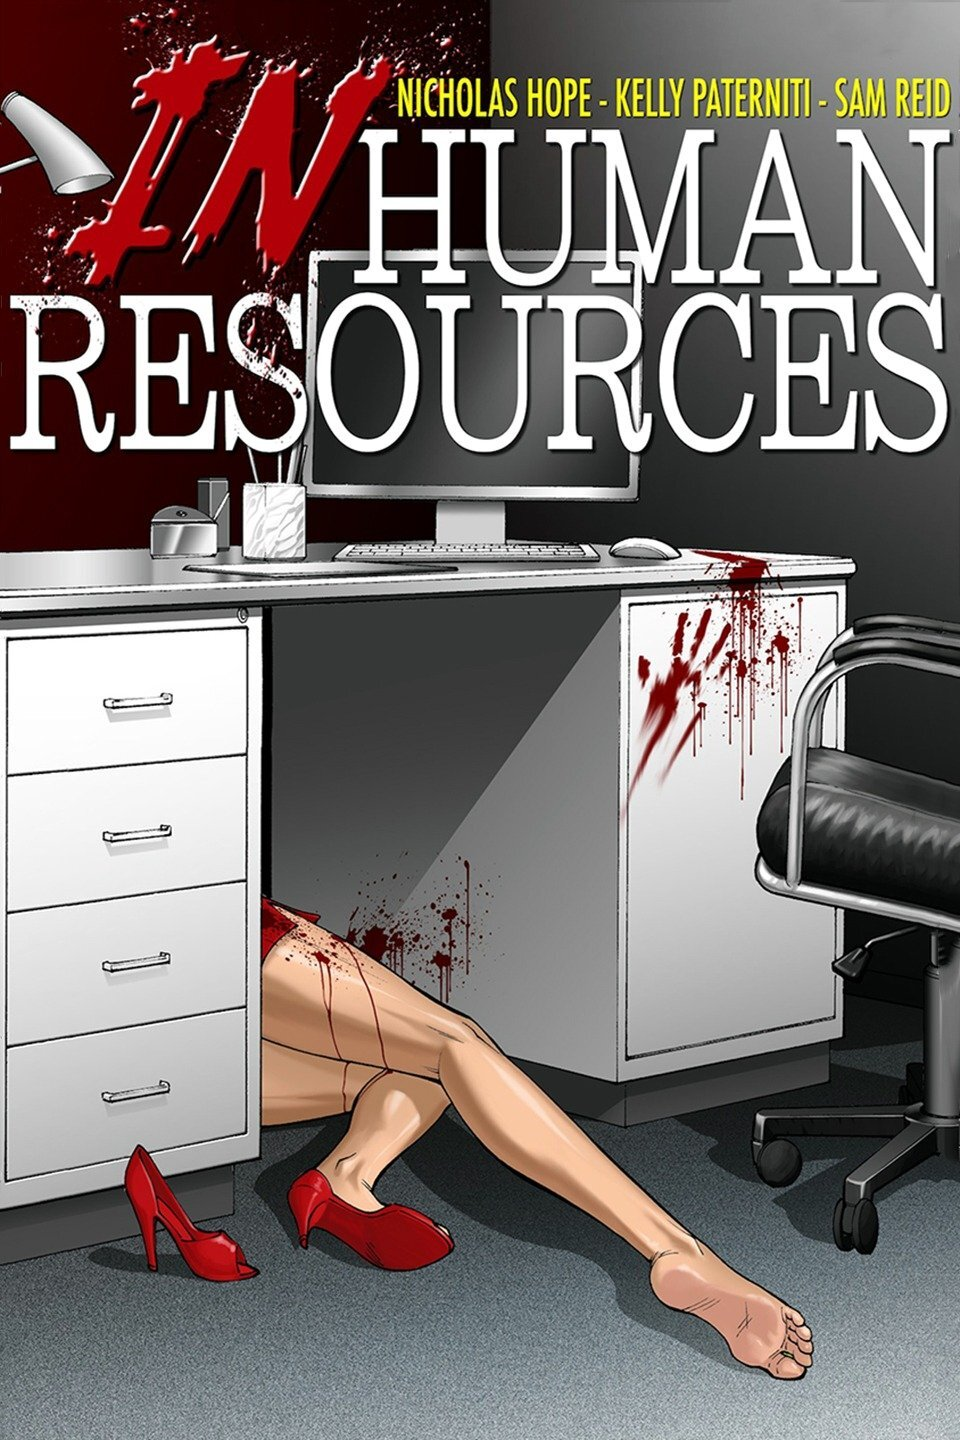 Redd Inc. (a.k.a. Inhuman Resources)